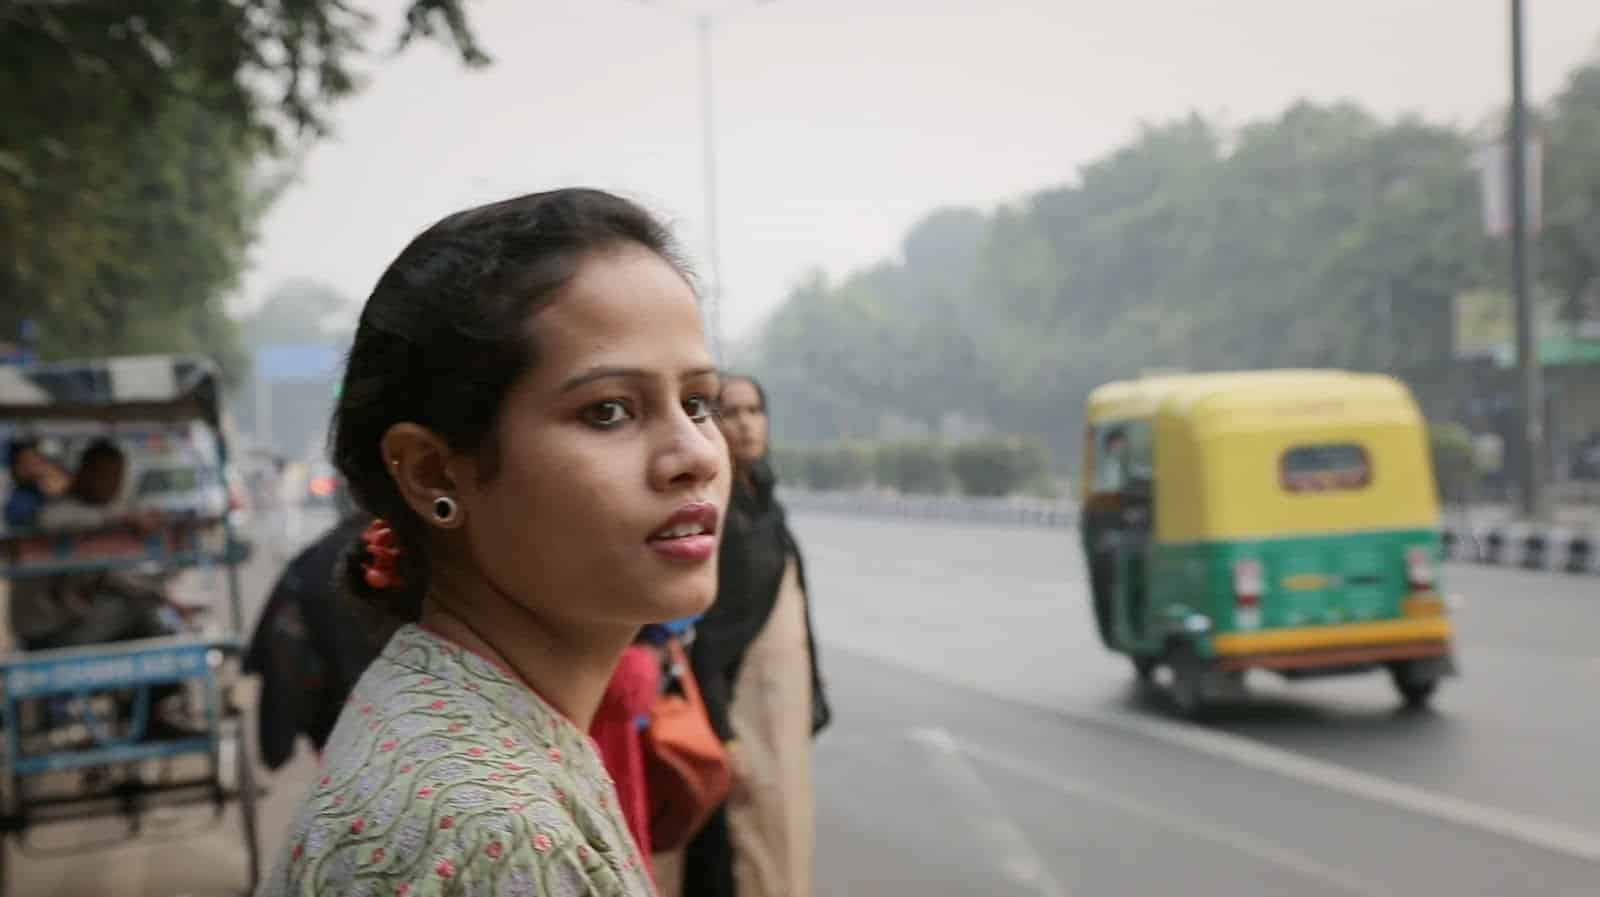 Making A Monster: A Look at Deepa Mehta's 'Anatomy of Violence'